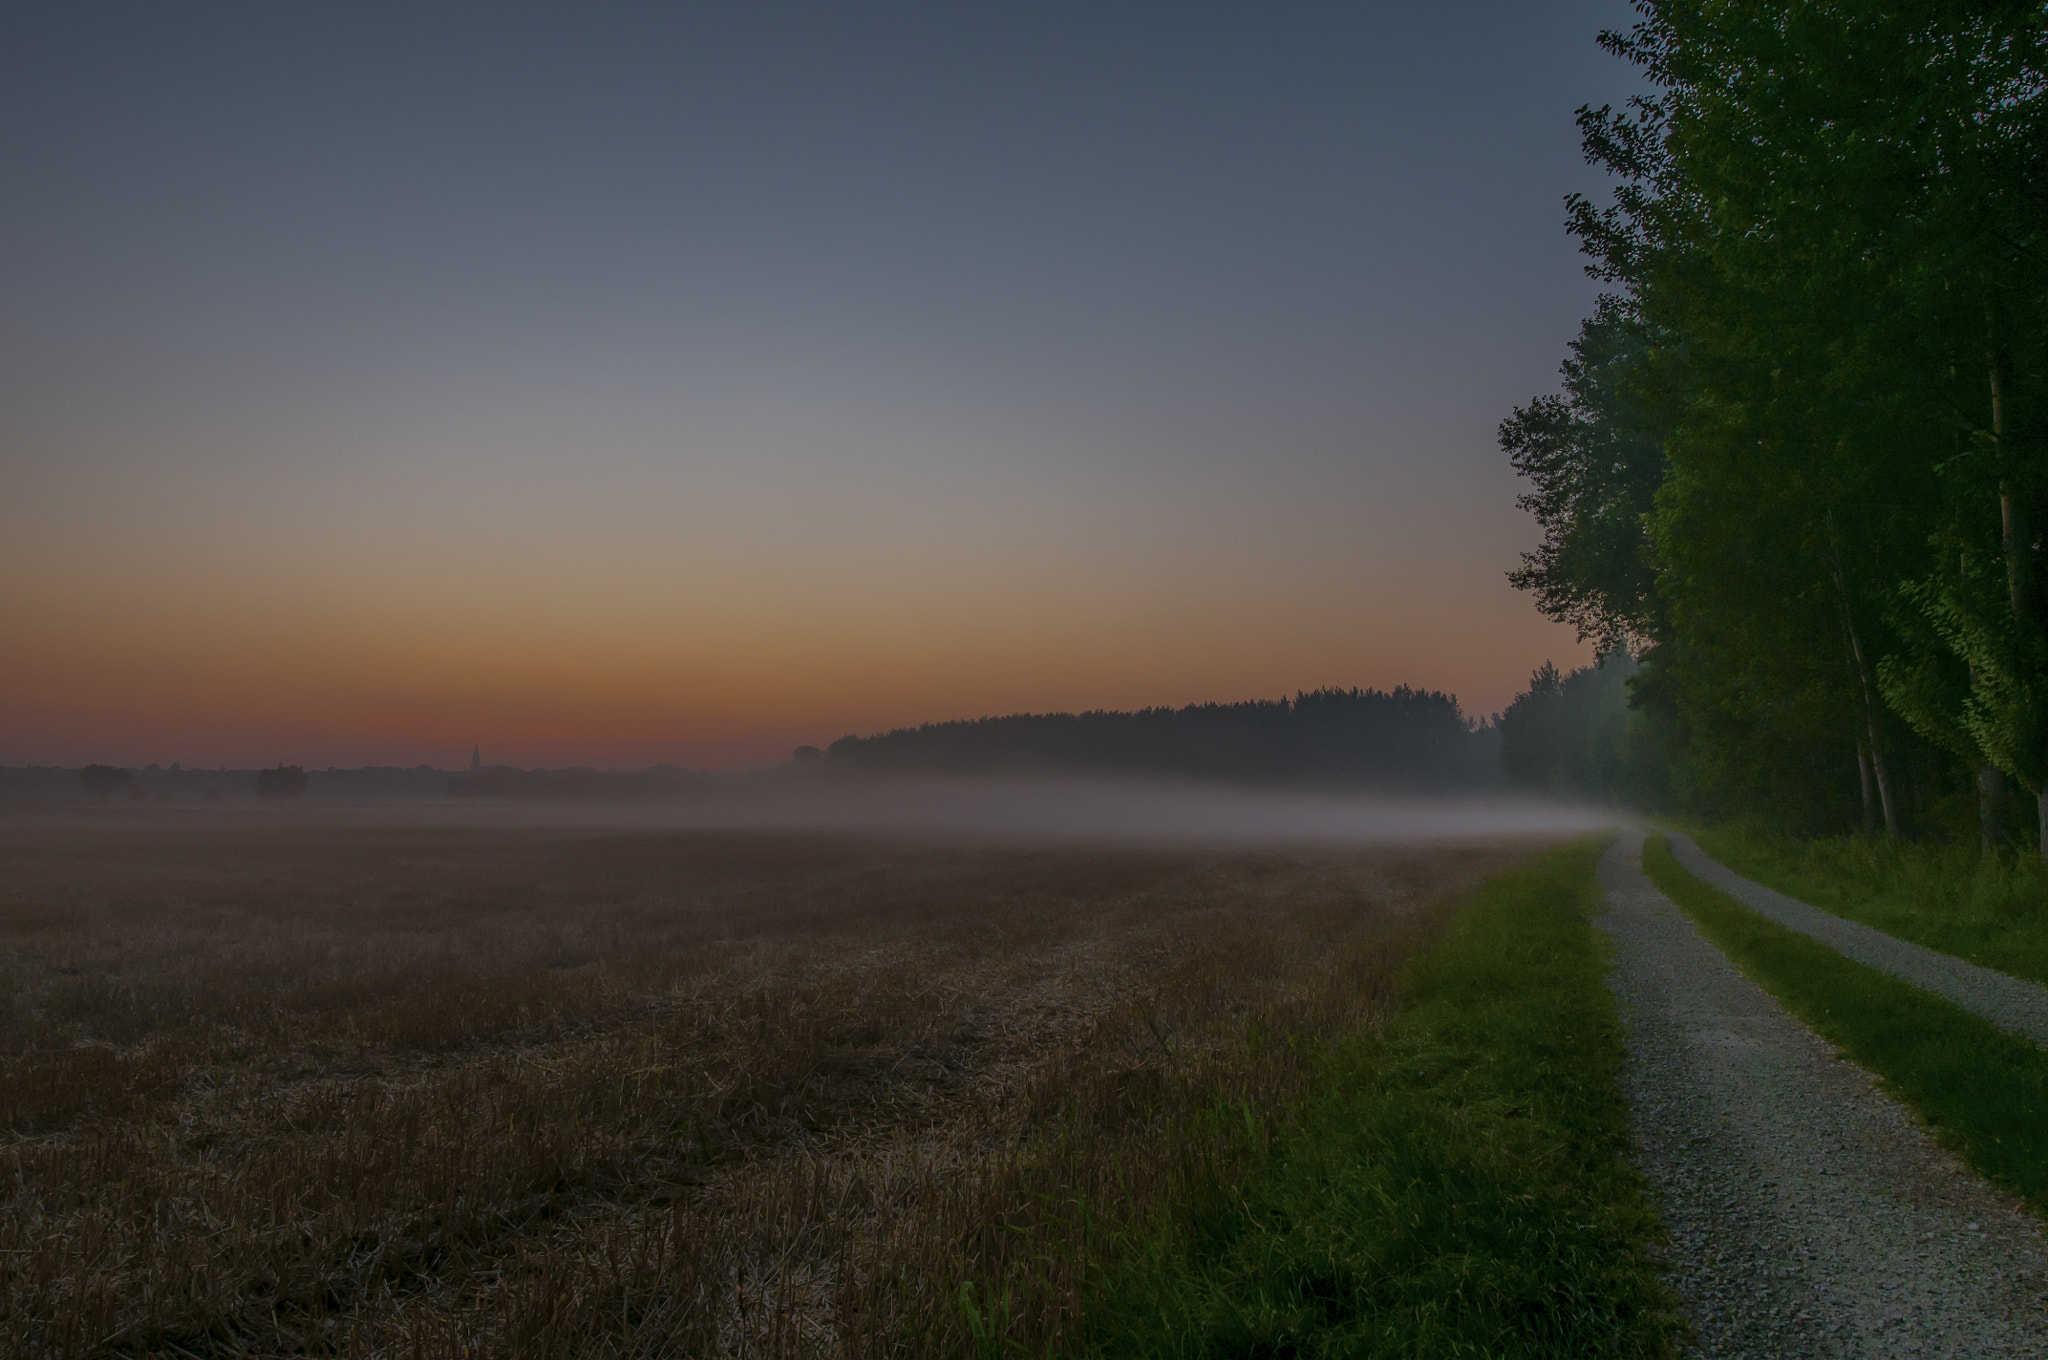 Photograph Abendnebel by Leo Pöcksteiner on 500px